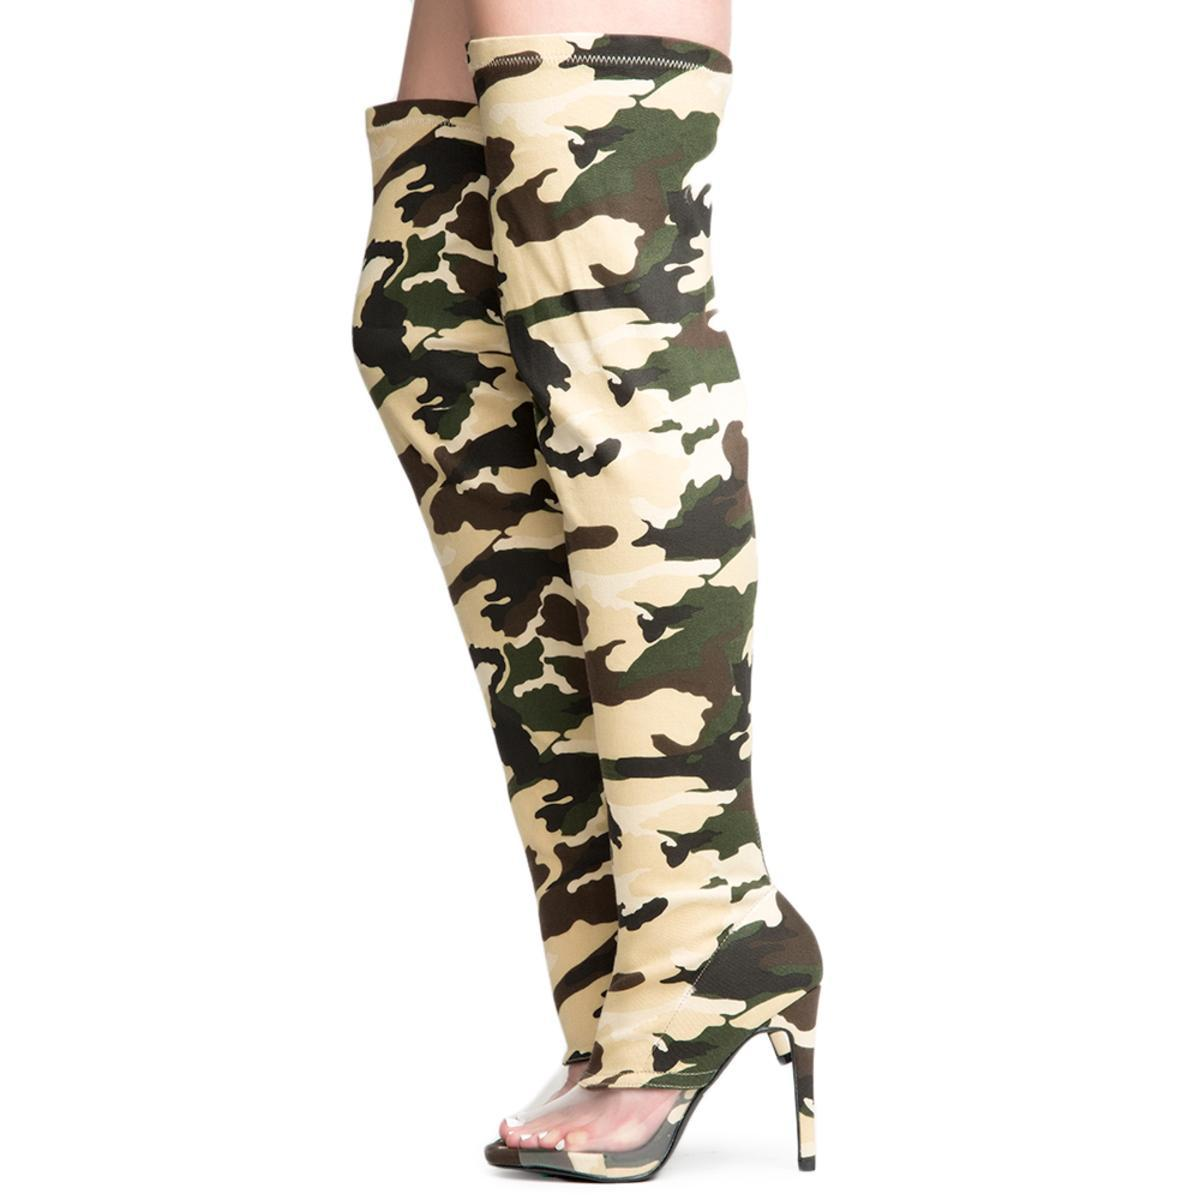 Cape Robbin Lola-15 Women's Camo Thigh High Boots